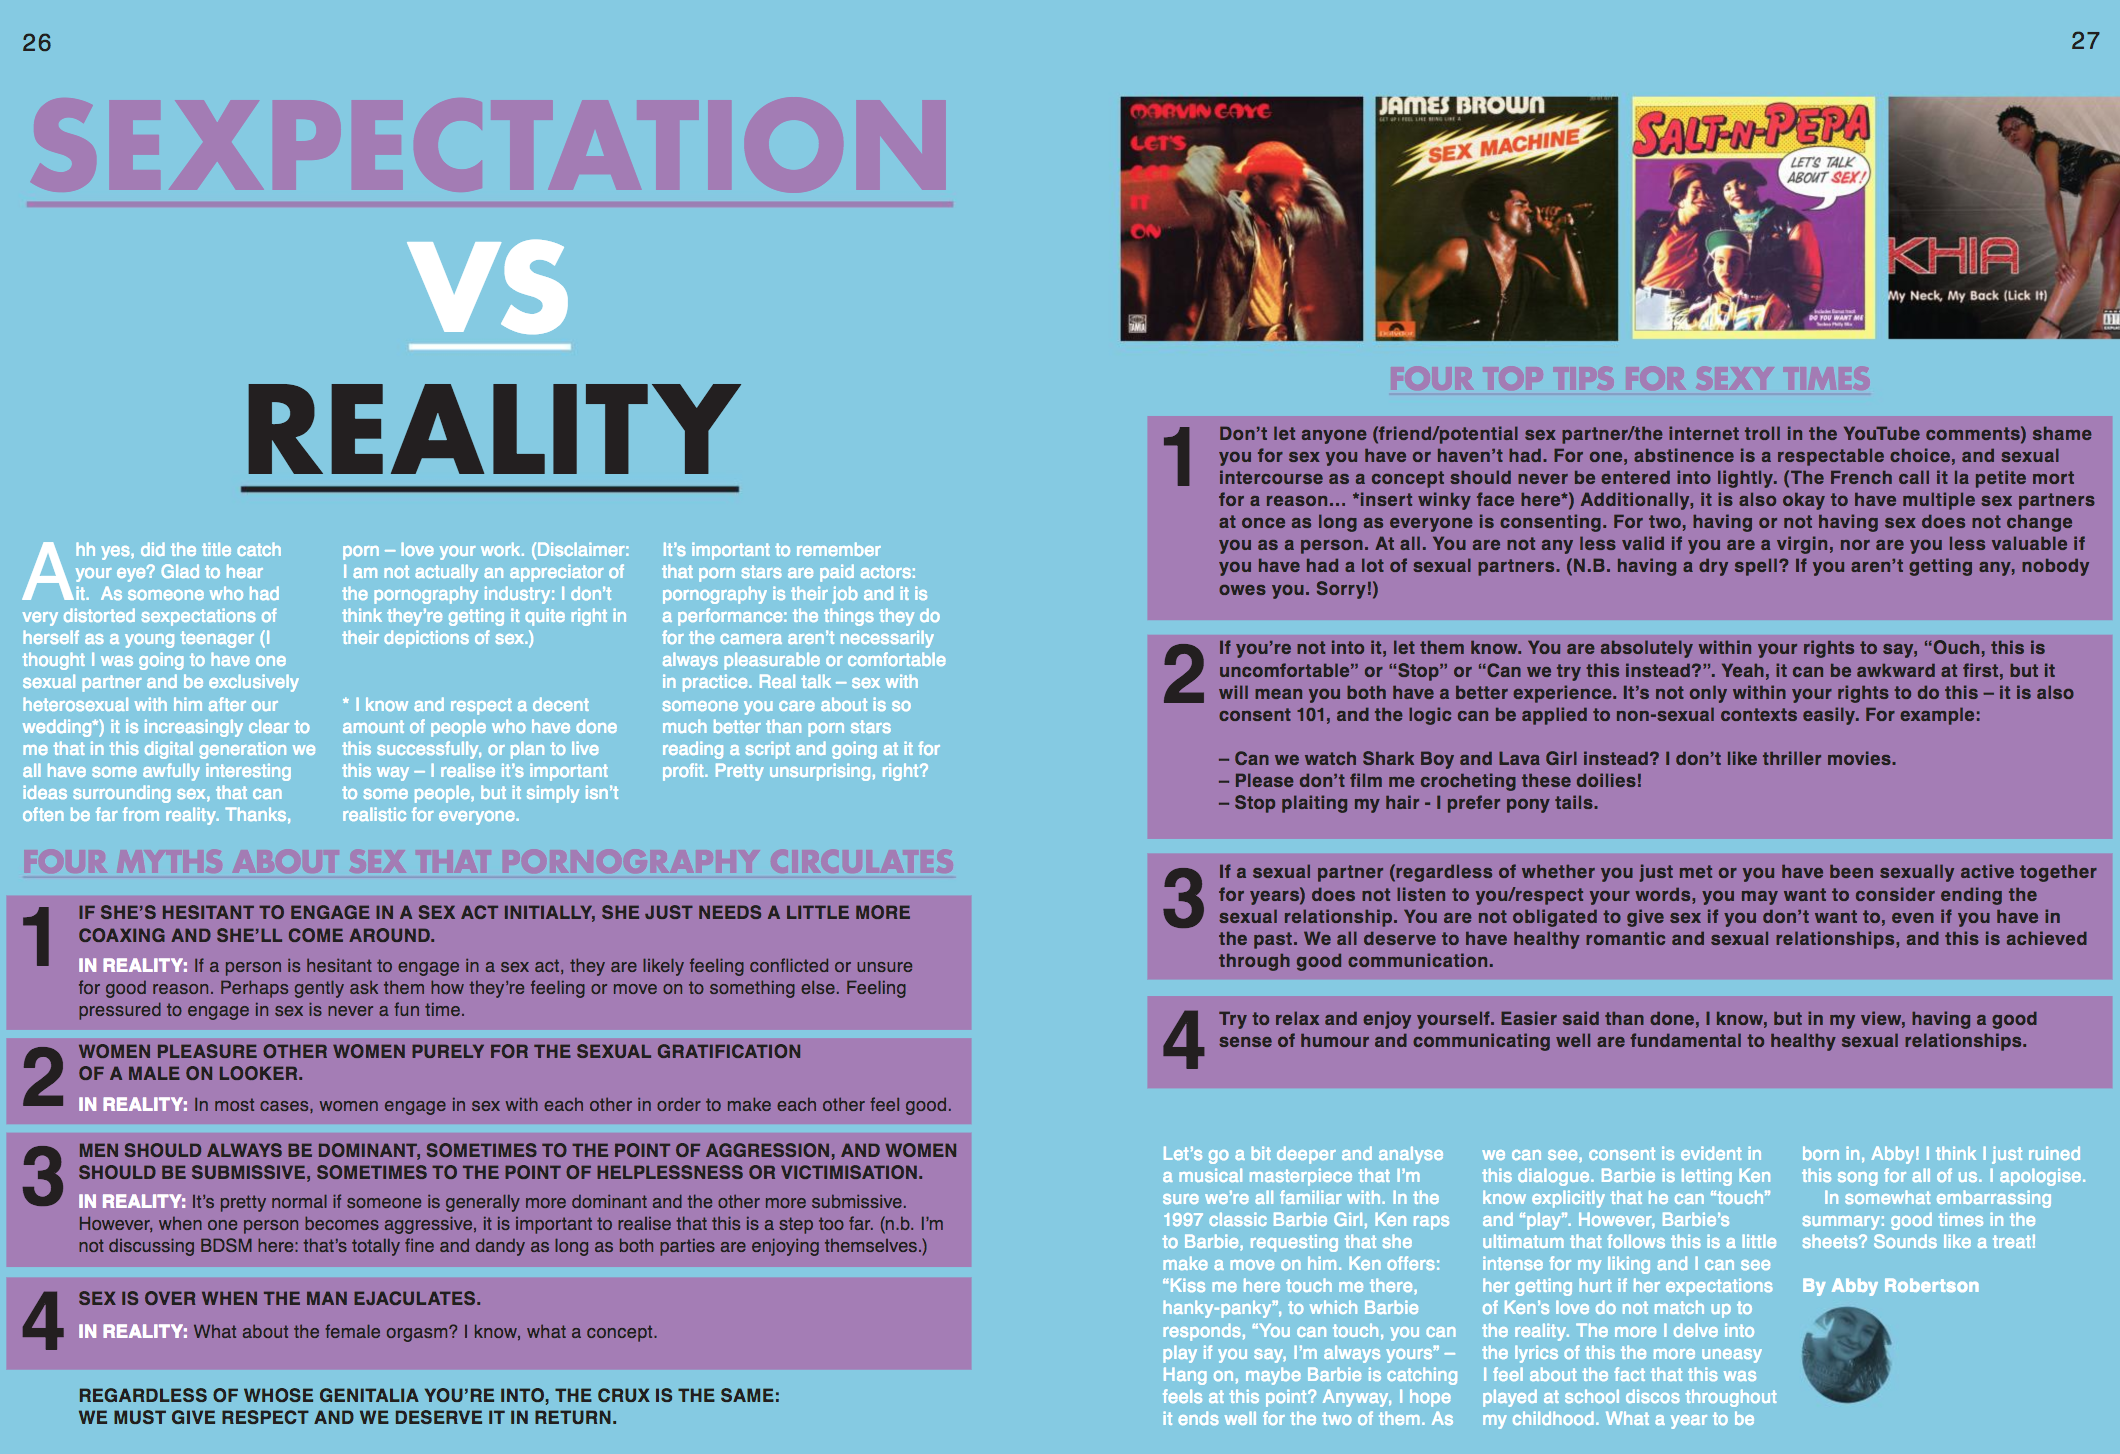 Sexpectations vs Reality Magazine Article